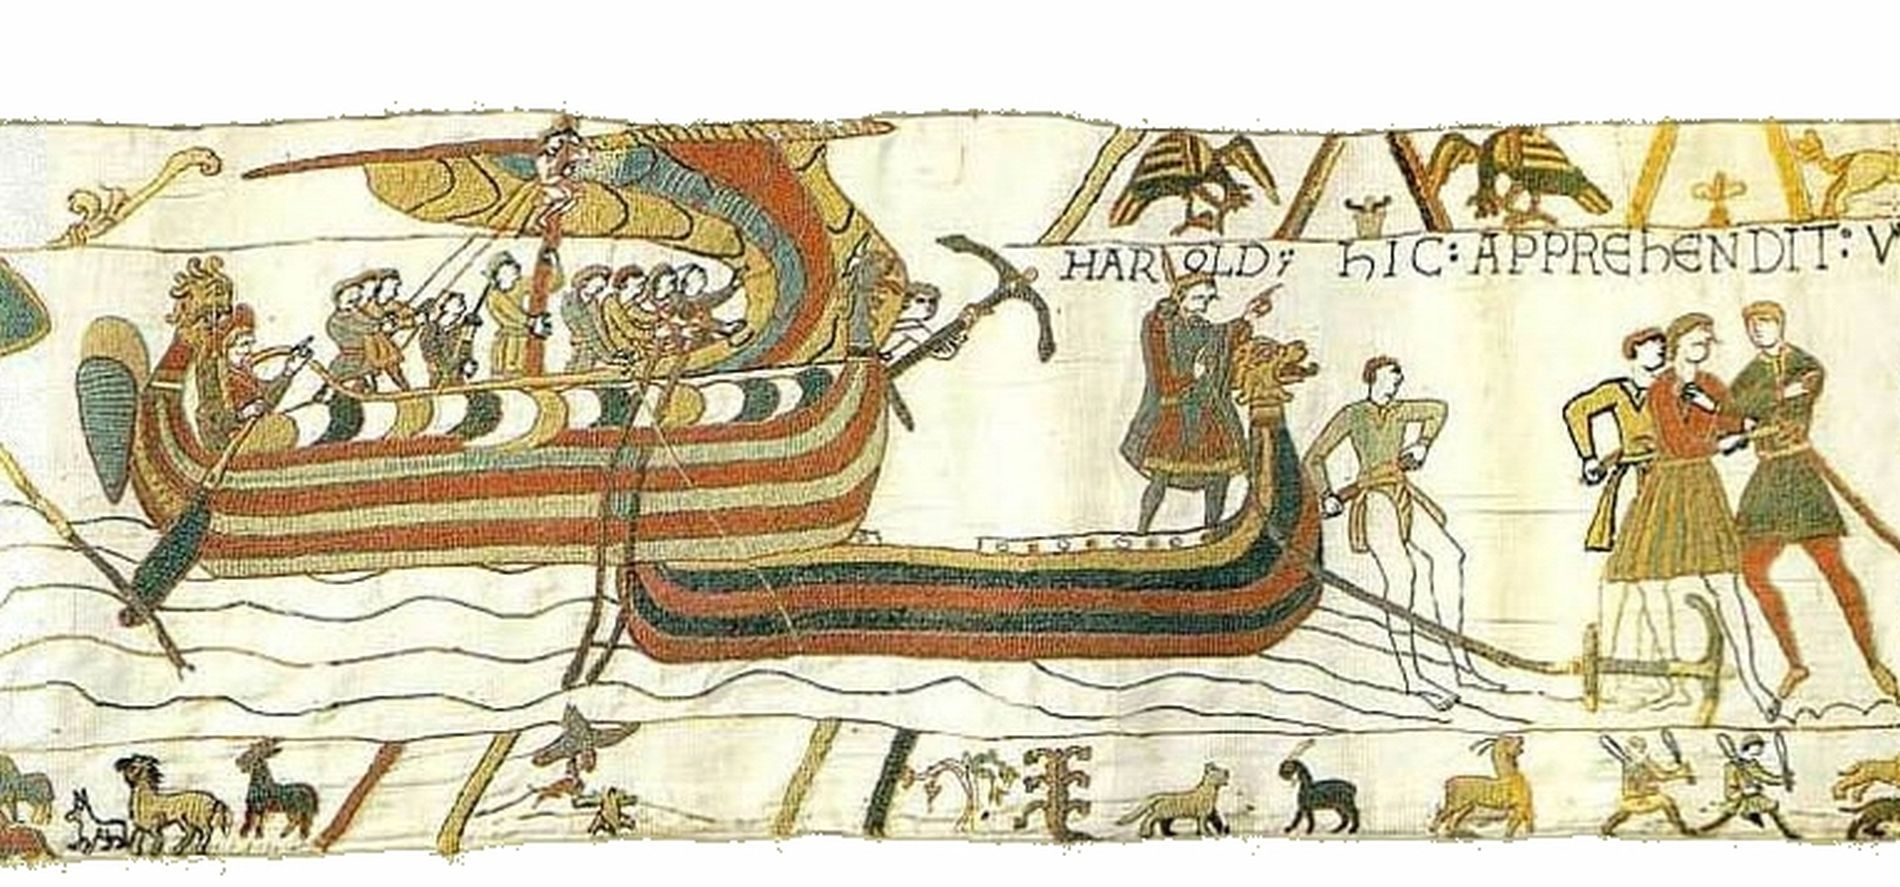 Viking ships on the Normandy coast. Scene from the Bayeux tapestry.